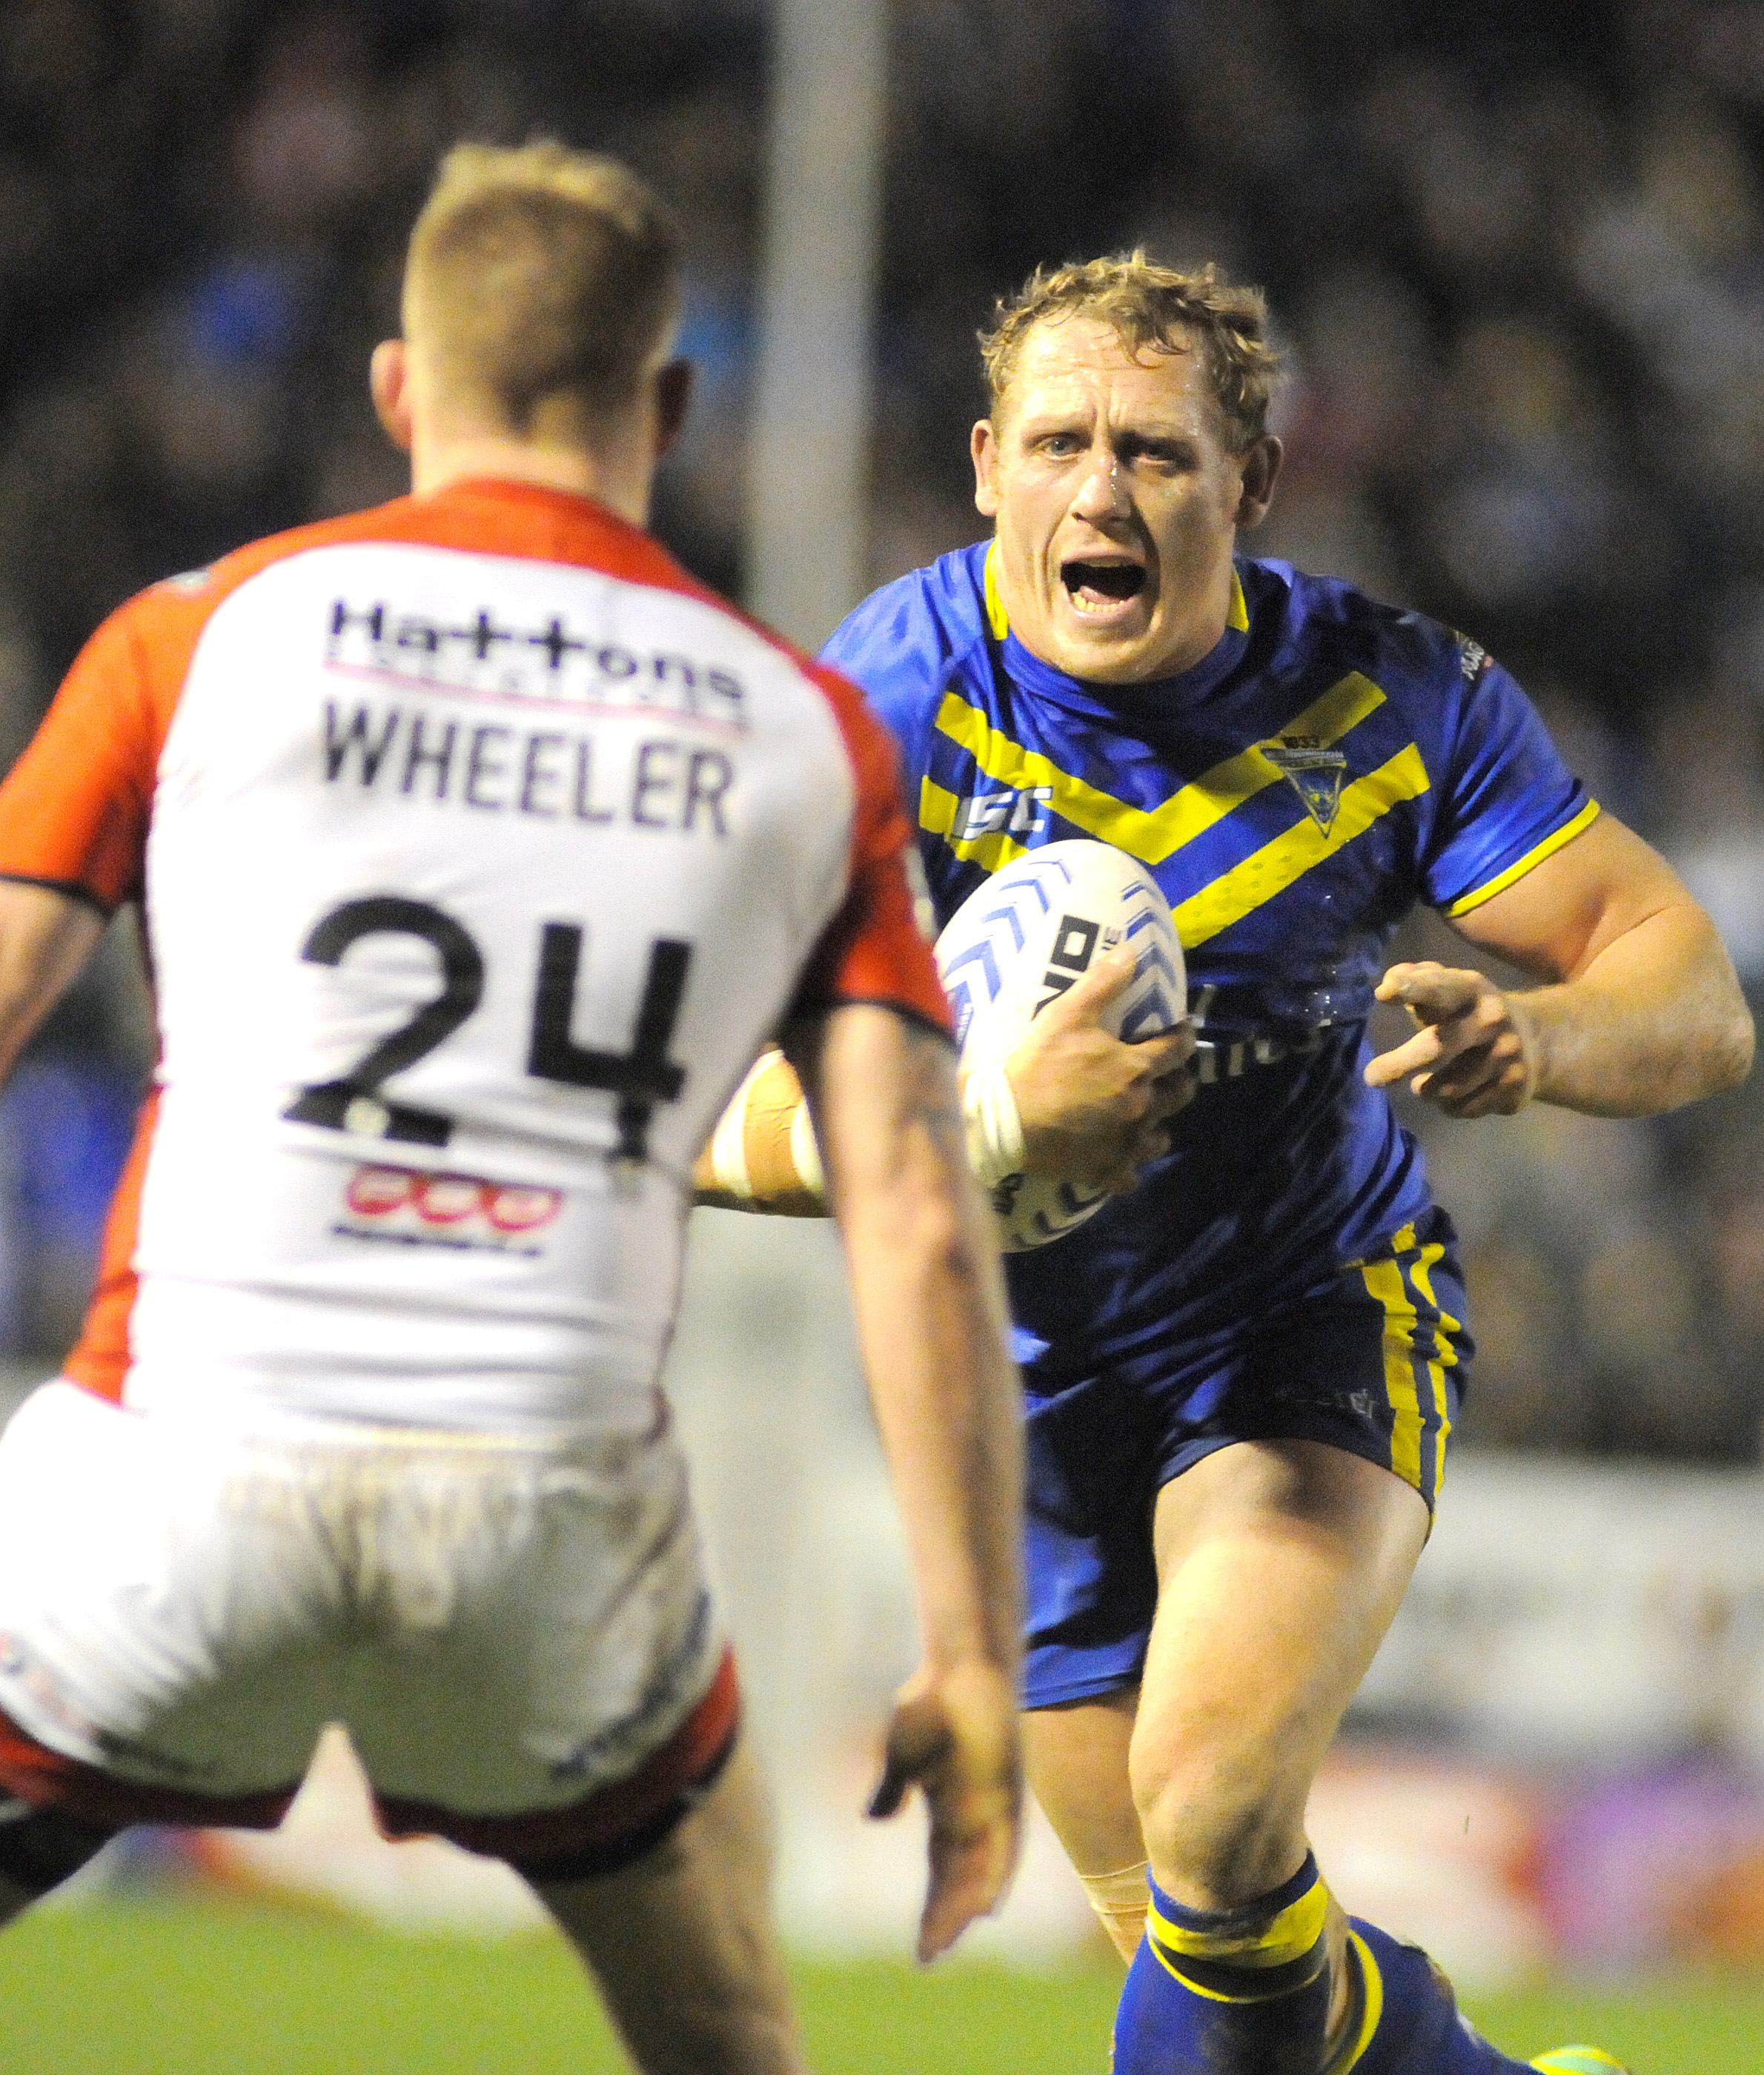 Ben Westwood charges towards Gary Wheeler during Wolves' opening week defeat against St Helens